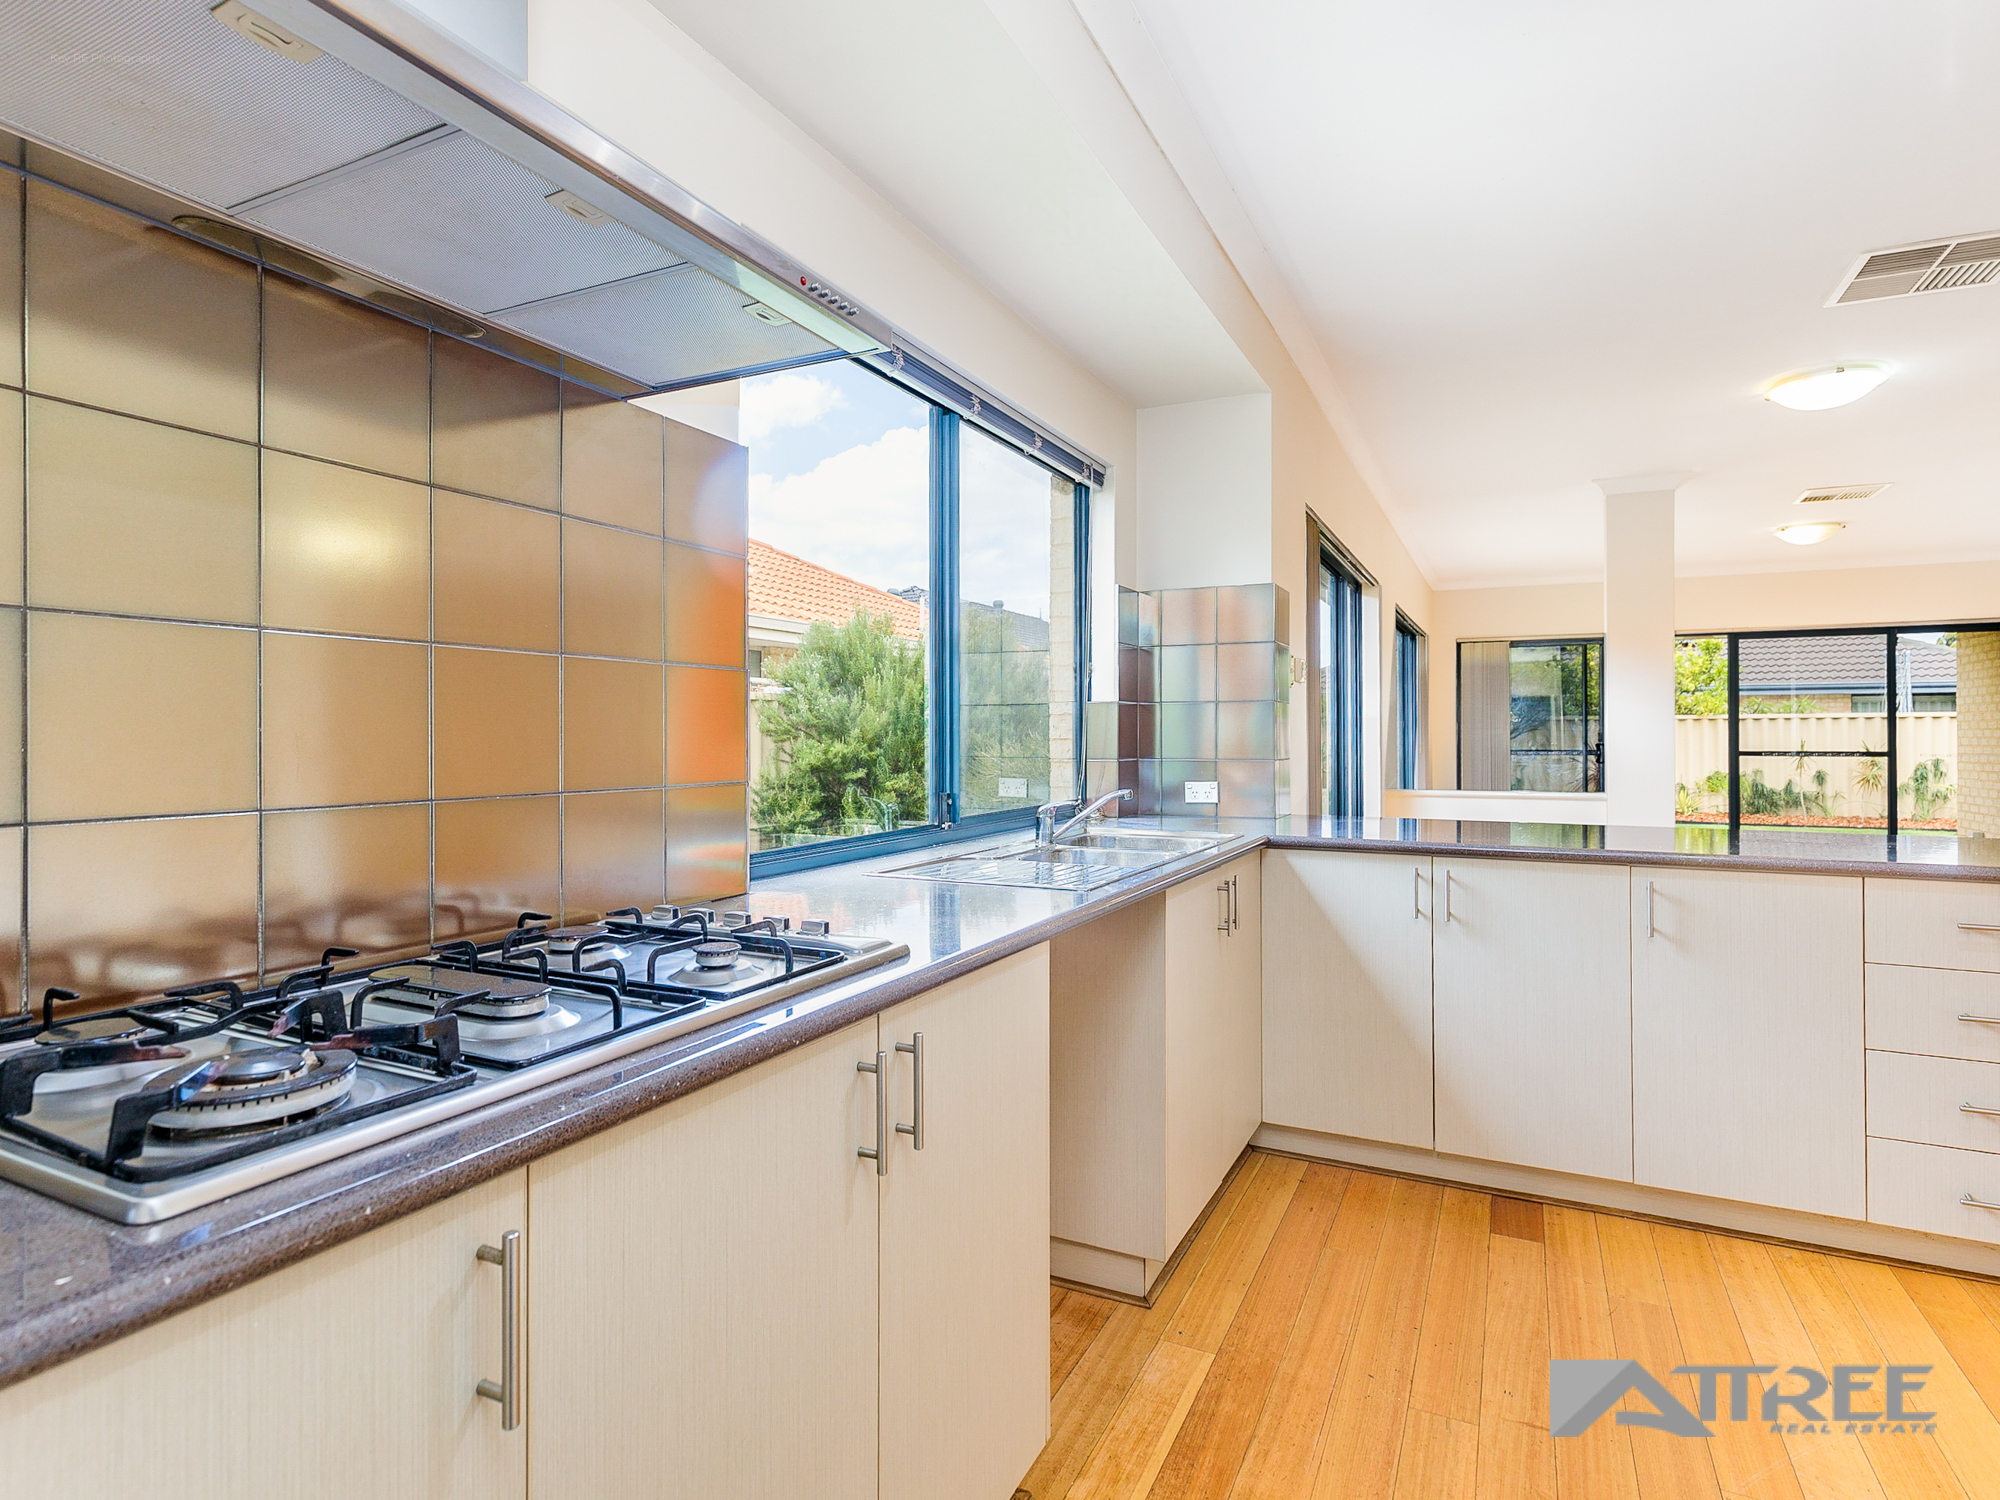 Property for sale in HARRISDALE, 26 Sacred Glade : Attree Real Estate